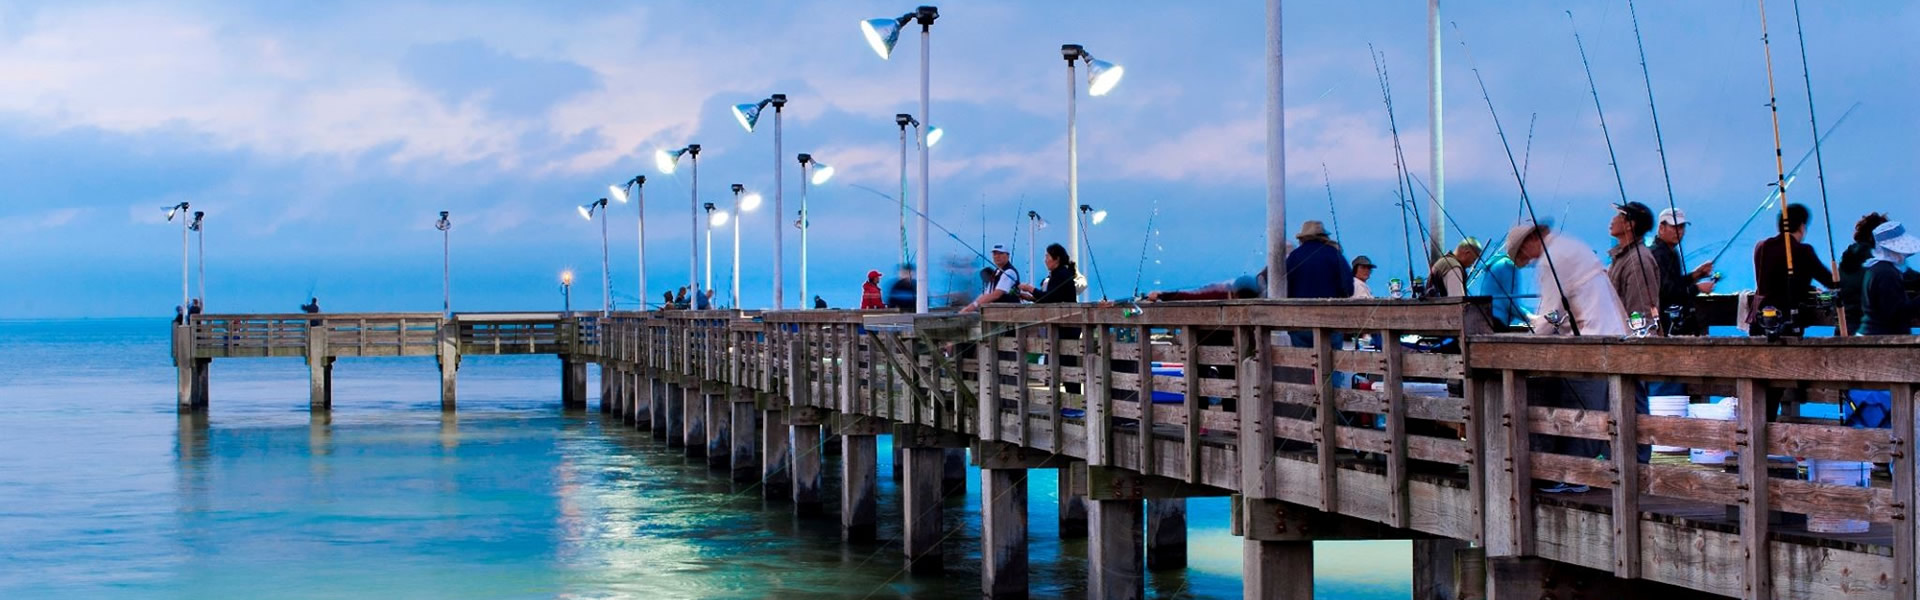 Seawolf Park Fishing Pier, Galveston TX